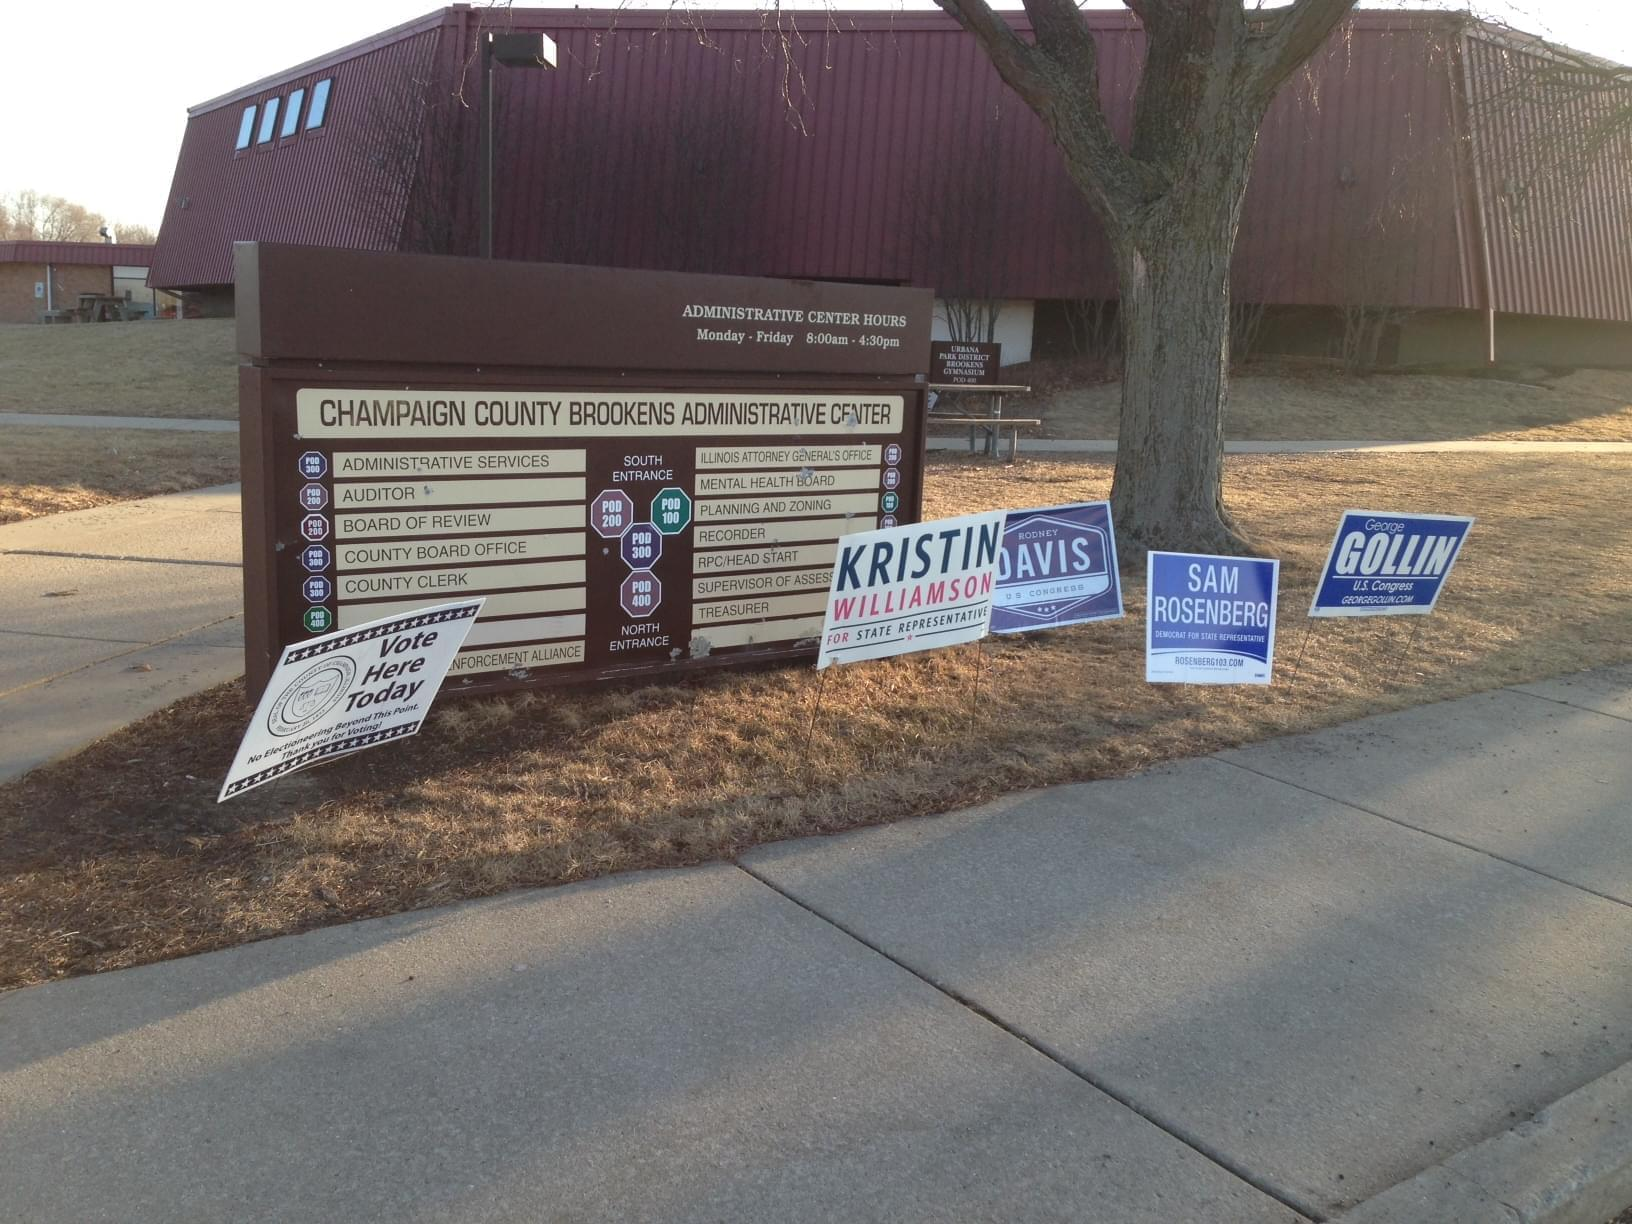 The Brookens Administrative Center in Urbana, Ill. on the day of the Primary Election on March 18, 2014.